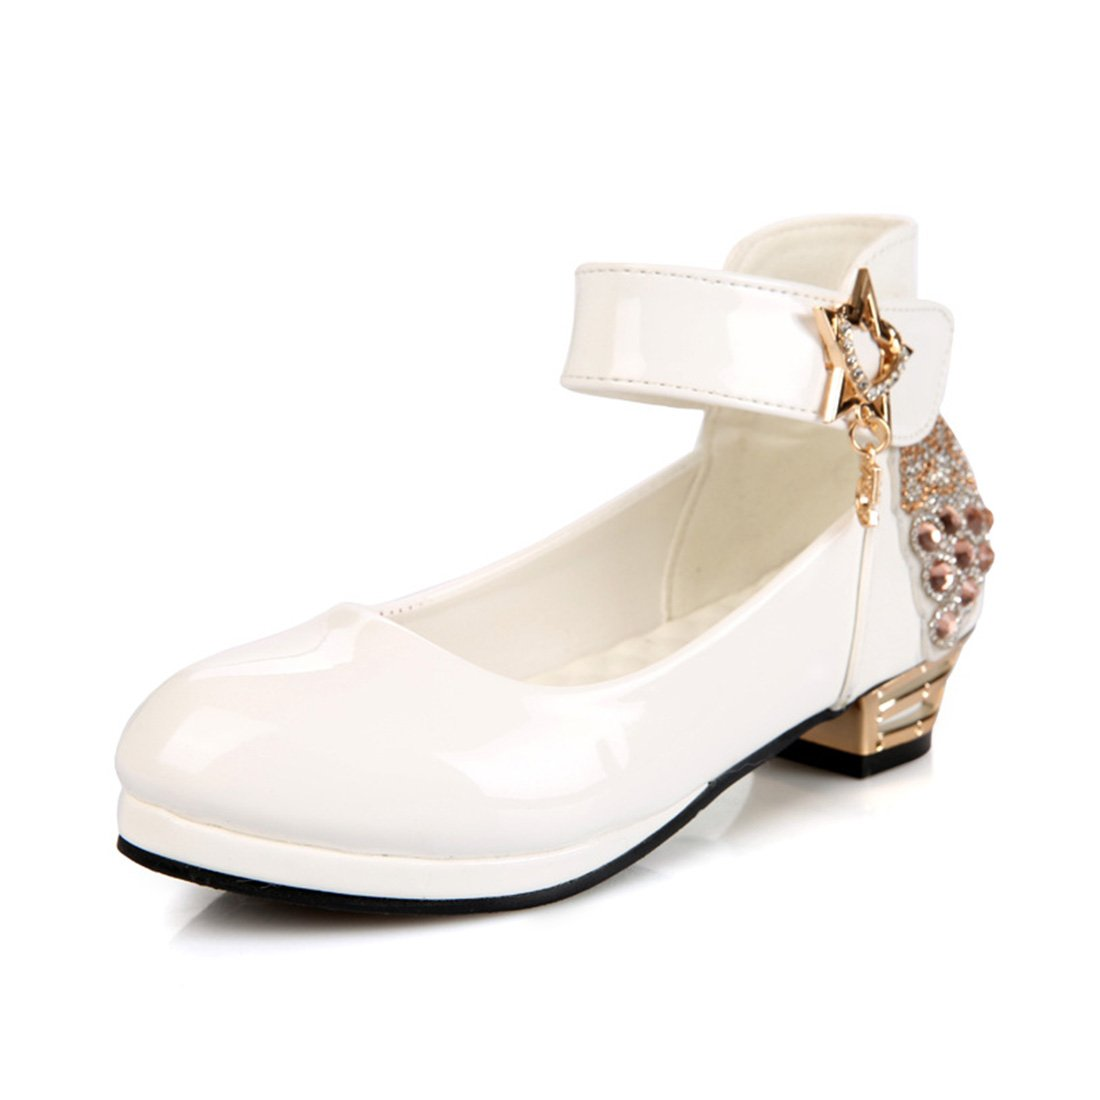 YIBLBOX Girls Kids Toddler Dress up Cosplay Princess Wedding Dance Shoes Ankle Strap Mary Jane Low Heel Shoes by YIBLBOX